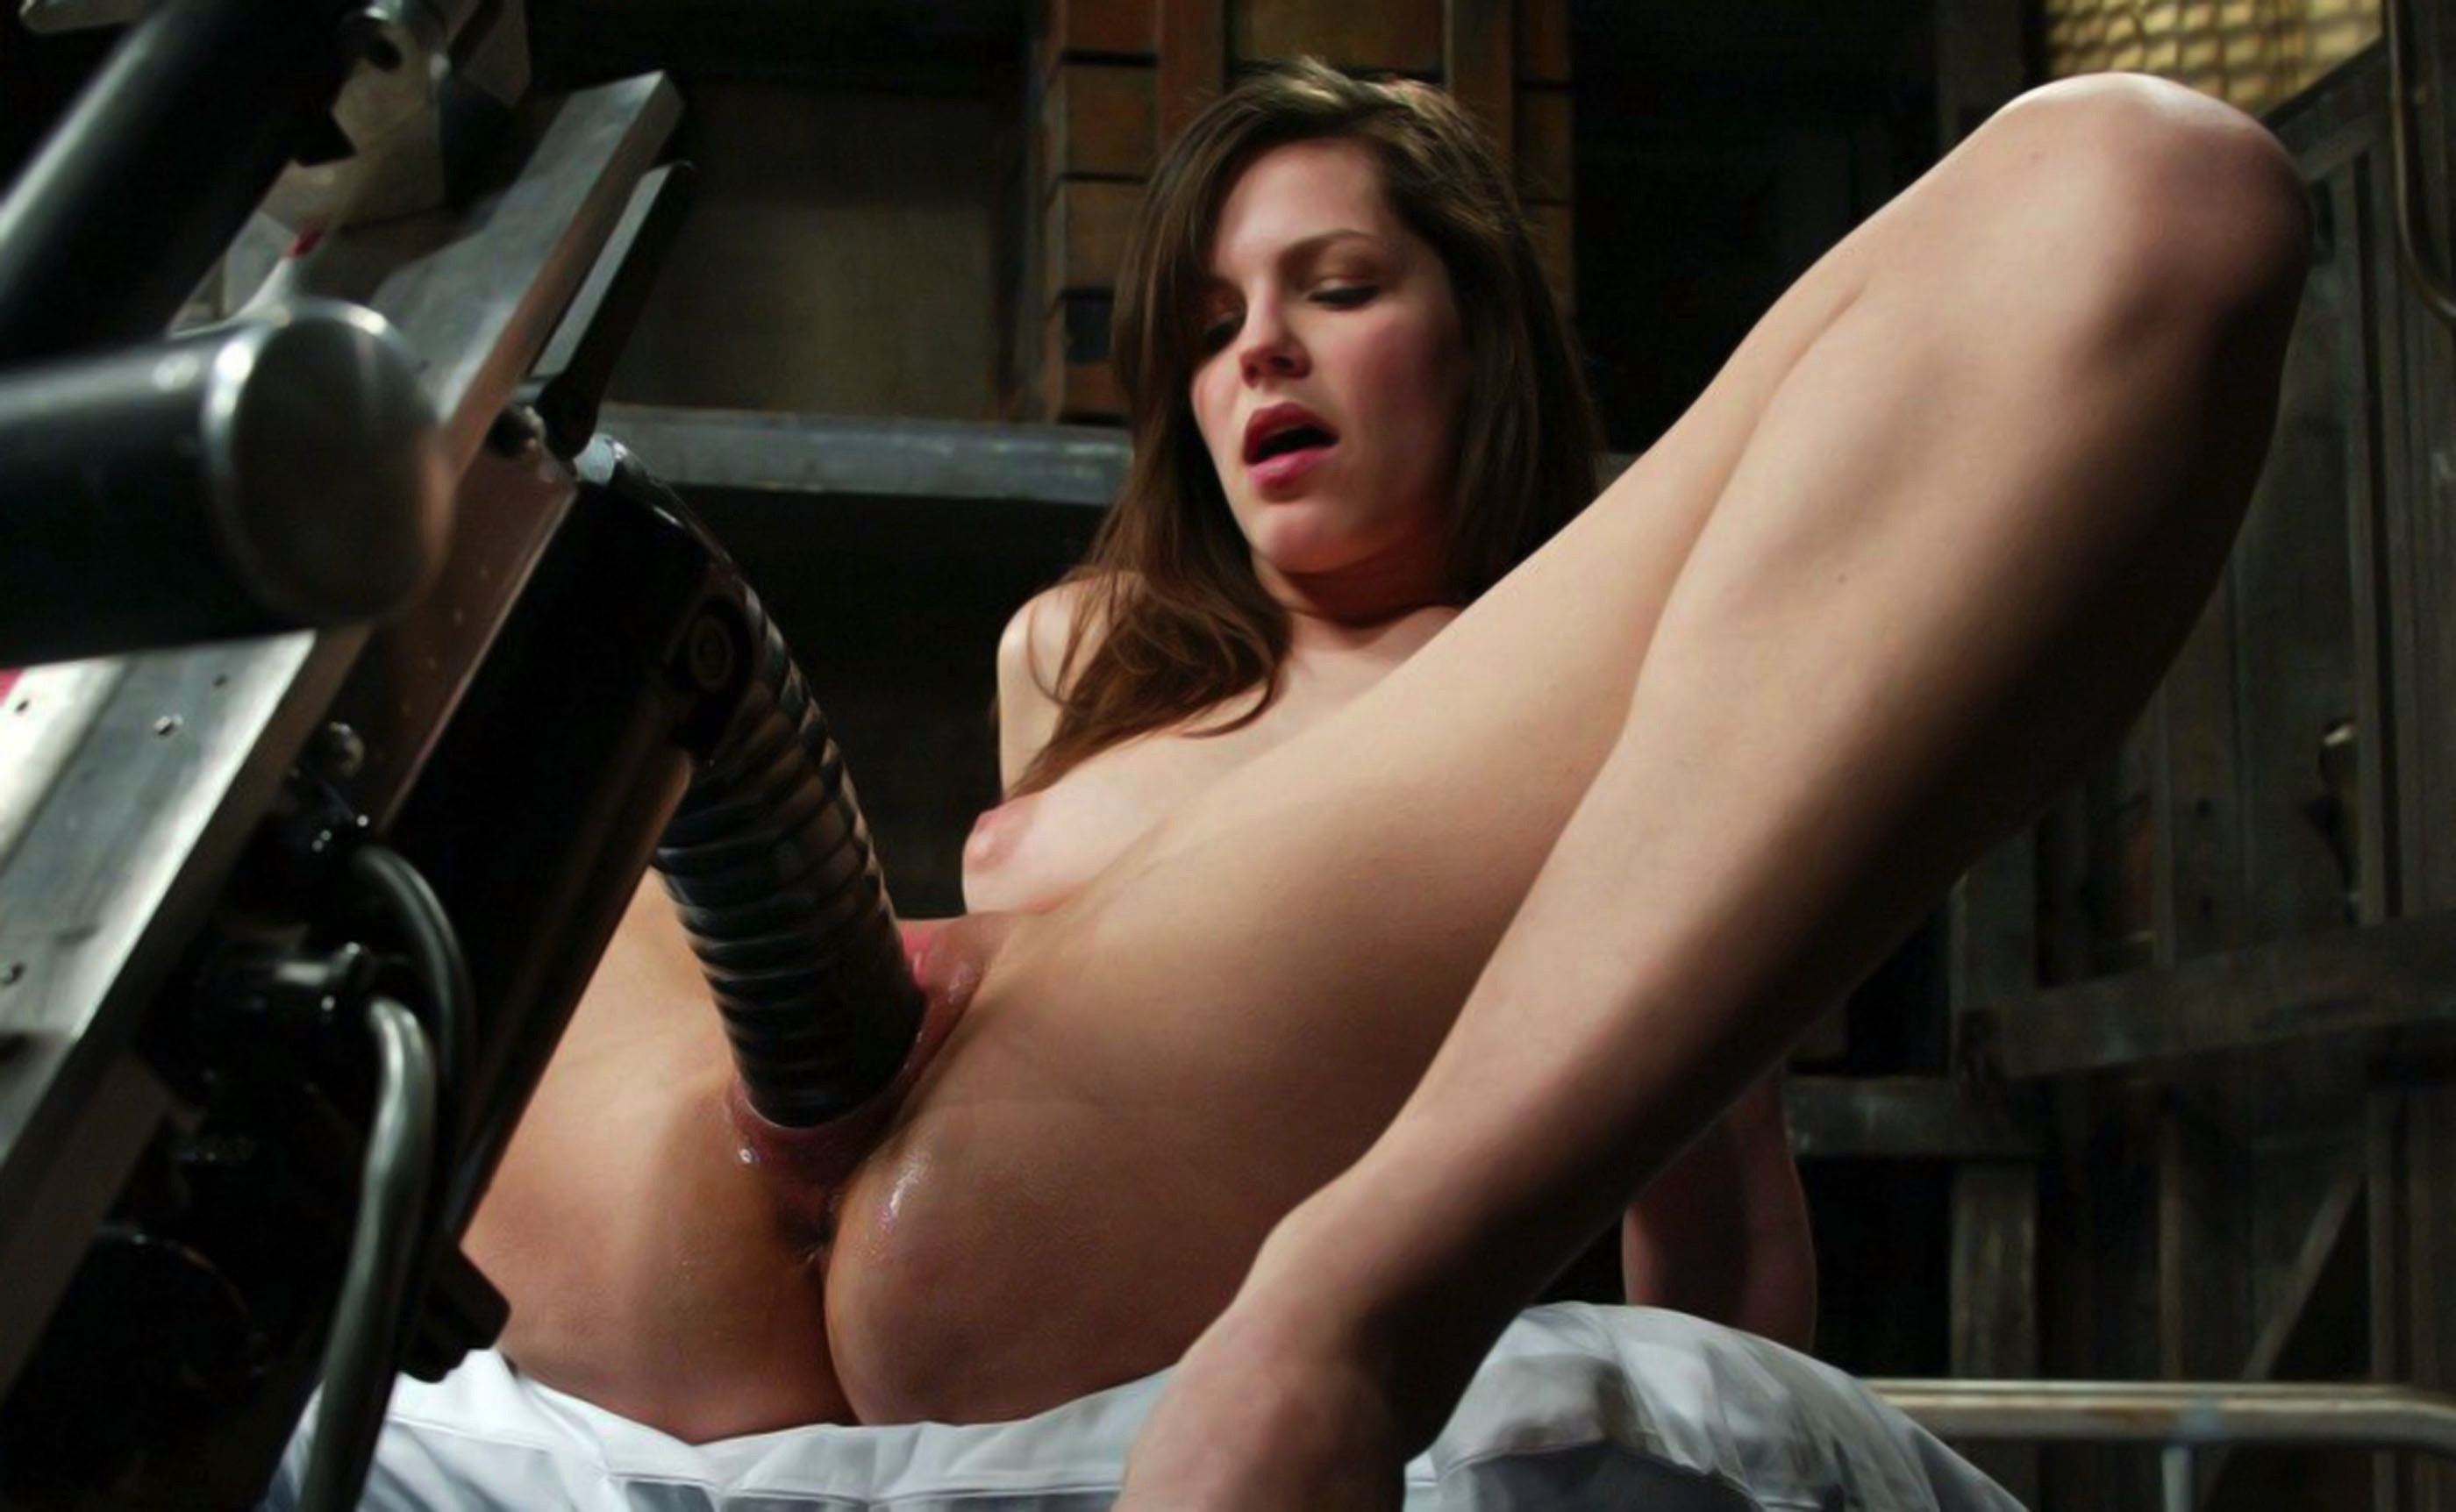 brutal anal fucking machine - Wallpaper fucking machine, orgasm, pussy, hardcore, bobbi starr, skinny,  delicious, sexy, perfect girl, spreding legs, perfect pussy, hot ass, tip  toes, ...